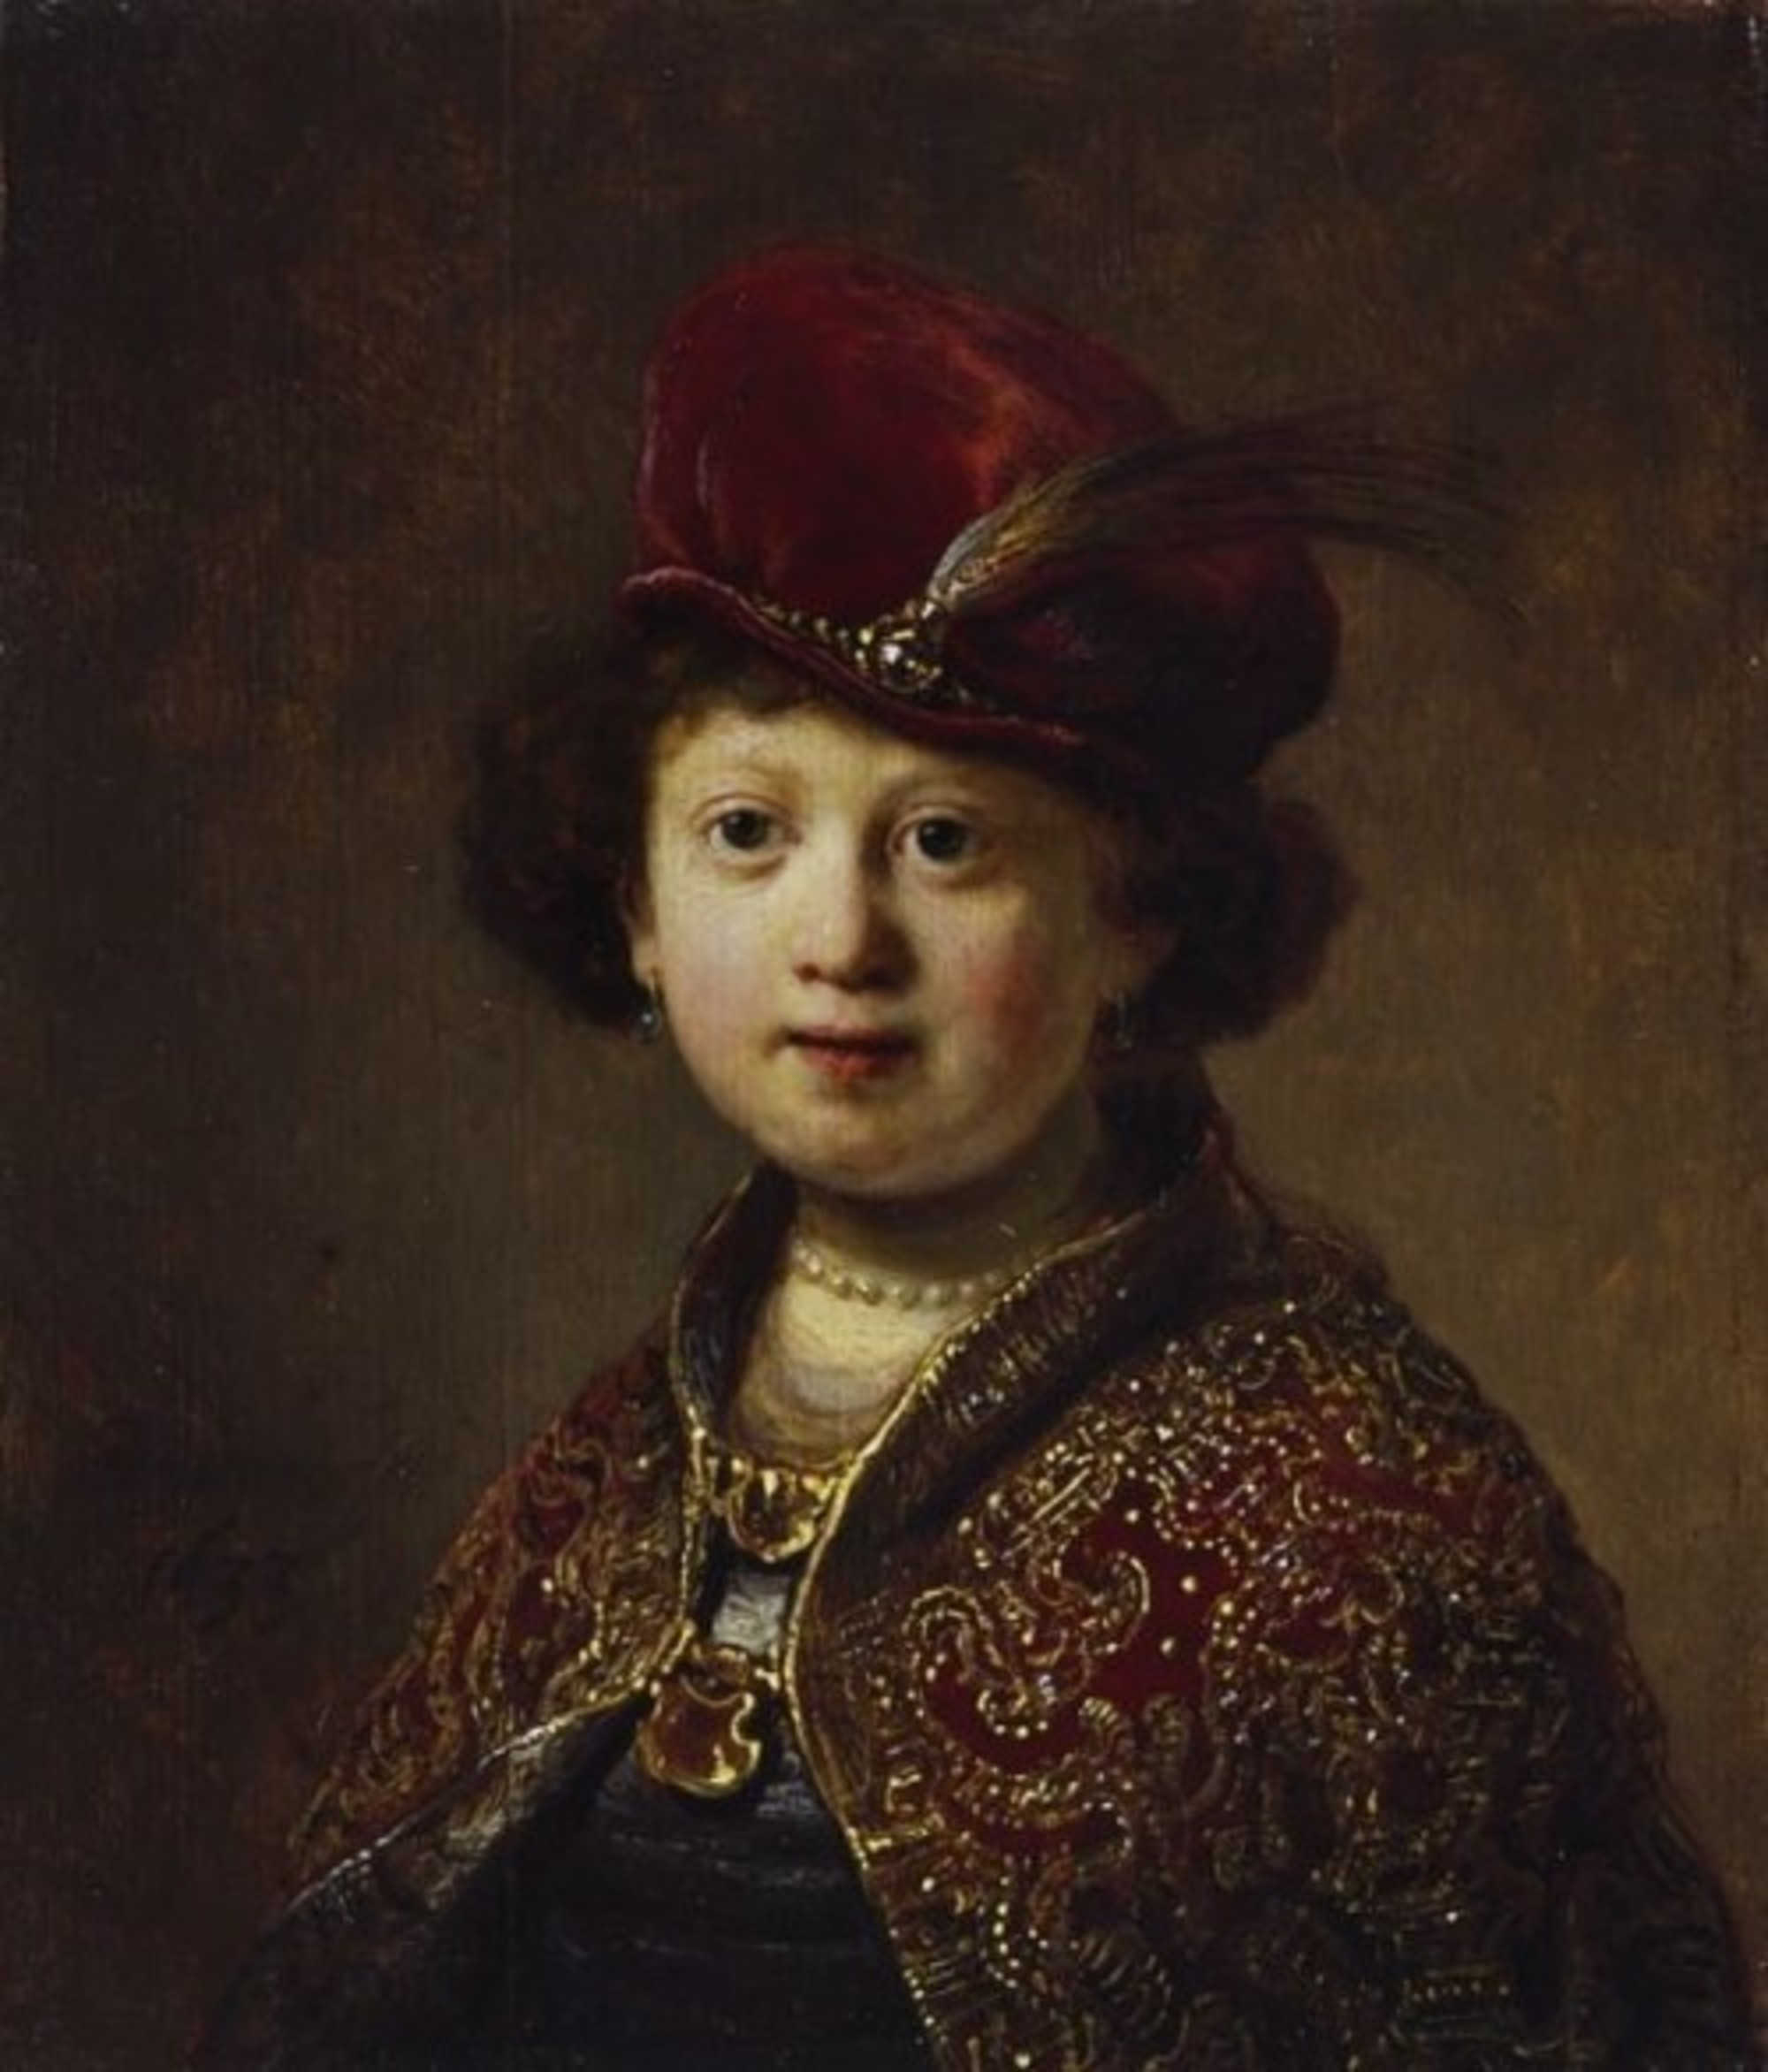 Rembrandt---A-Boy-in-Fanciful-Costume.jpg